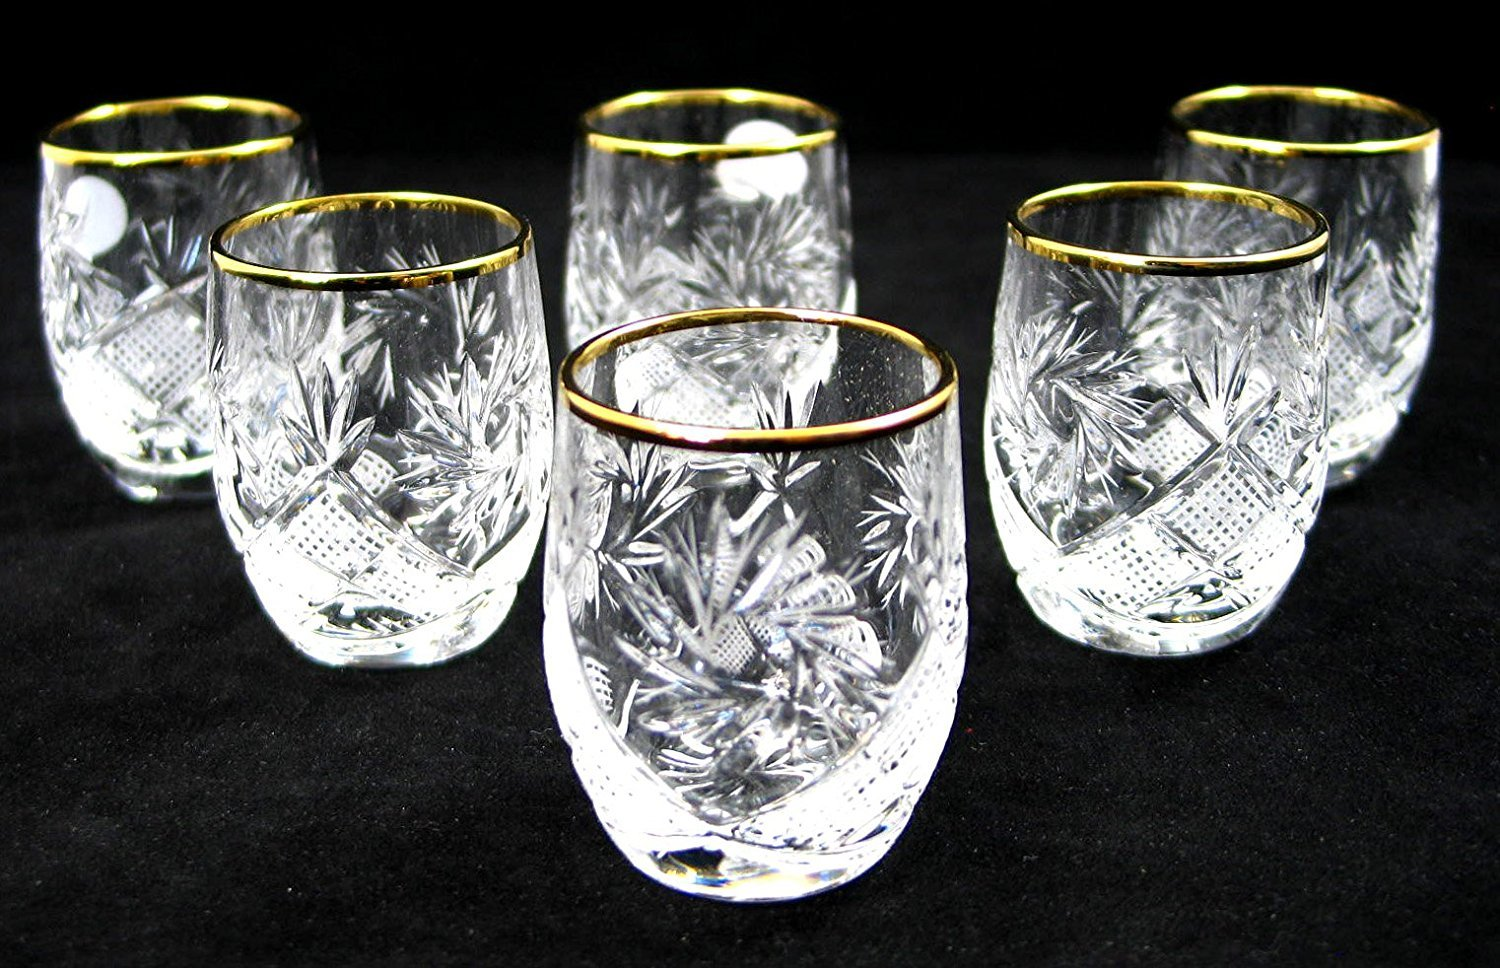 SET of 6 Russian Cut Crystal Shot Shooter Glasses 24K Gold Rimmed 1.7 Oz. Vodka Liquor Old-fashioned Glassware Hand Made